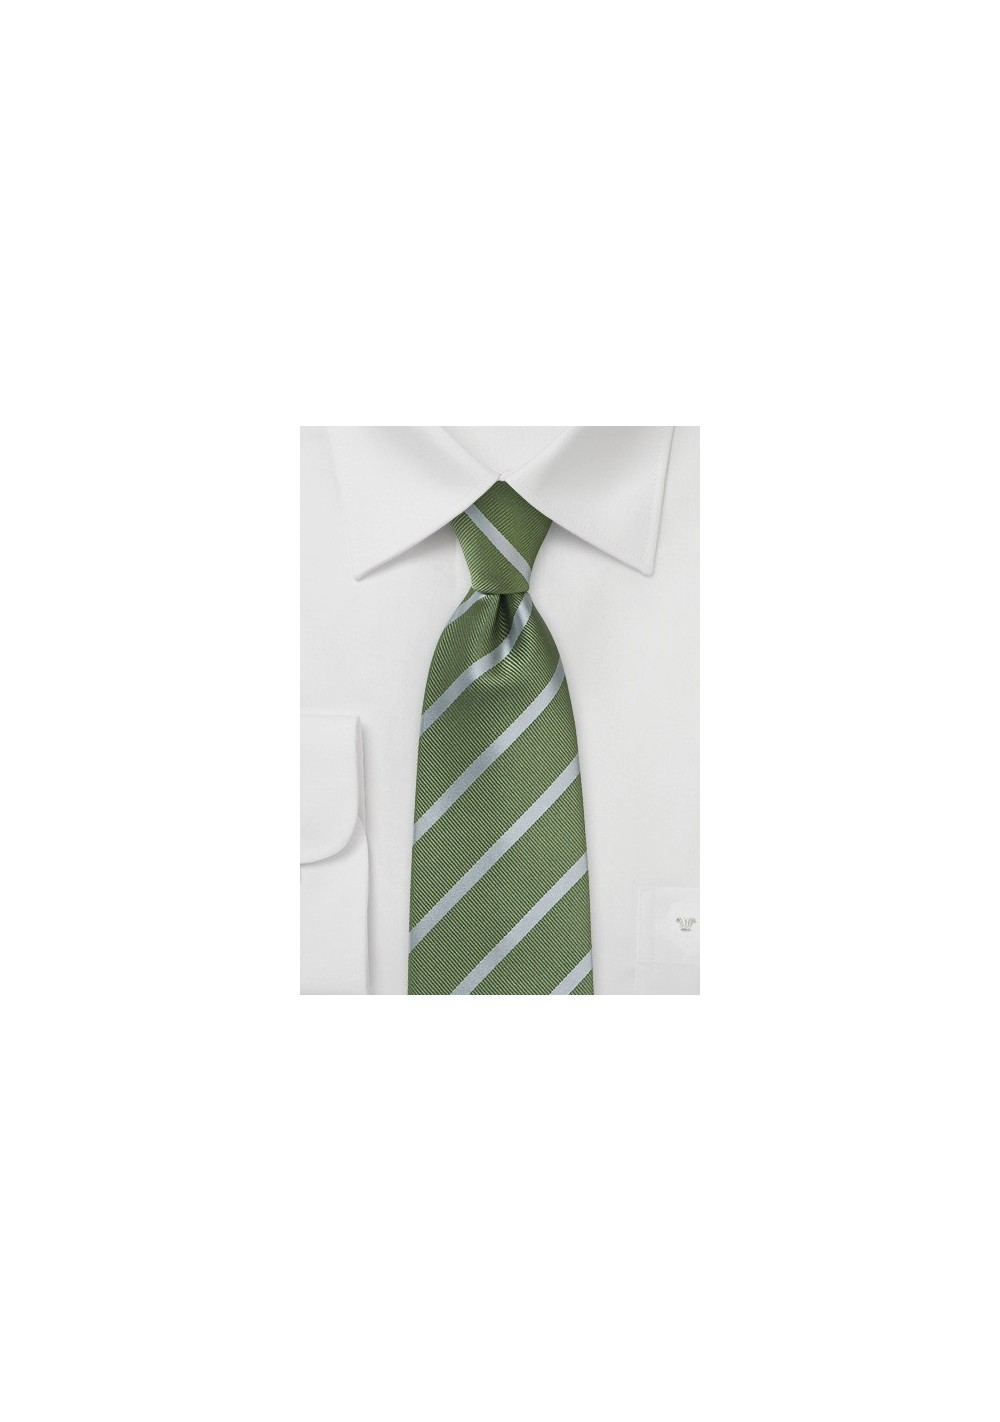 Fern and Silver Striped Tie